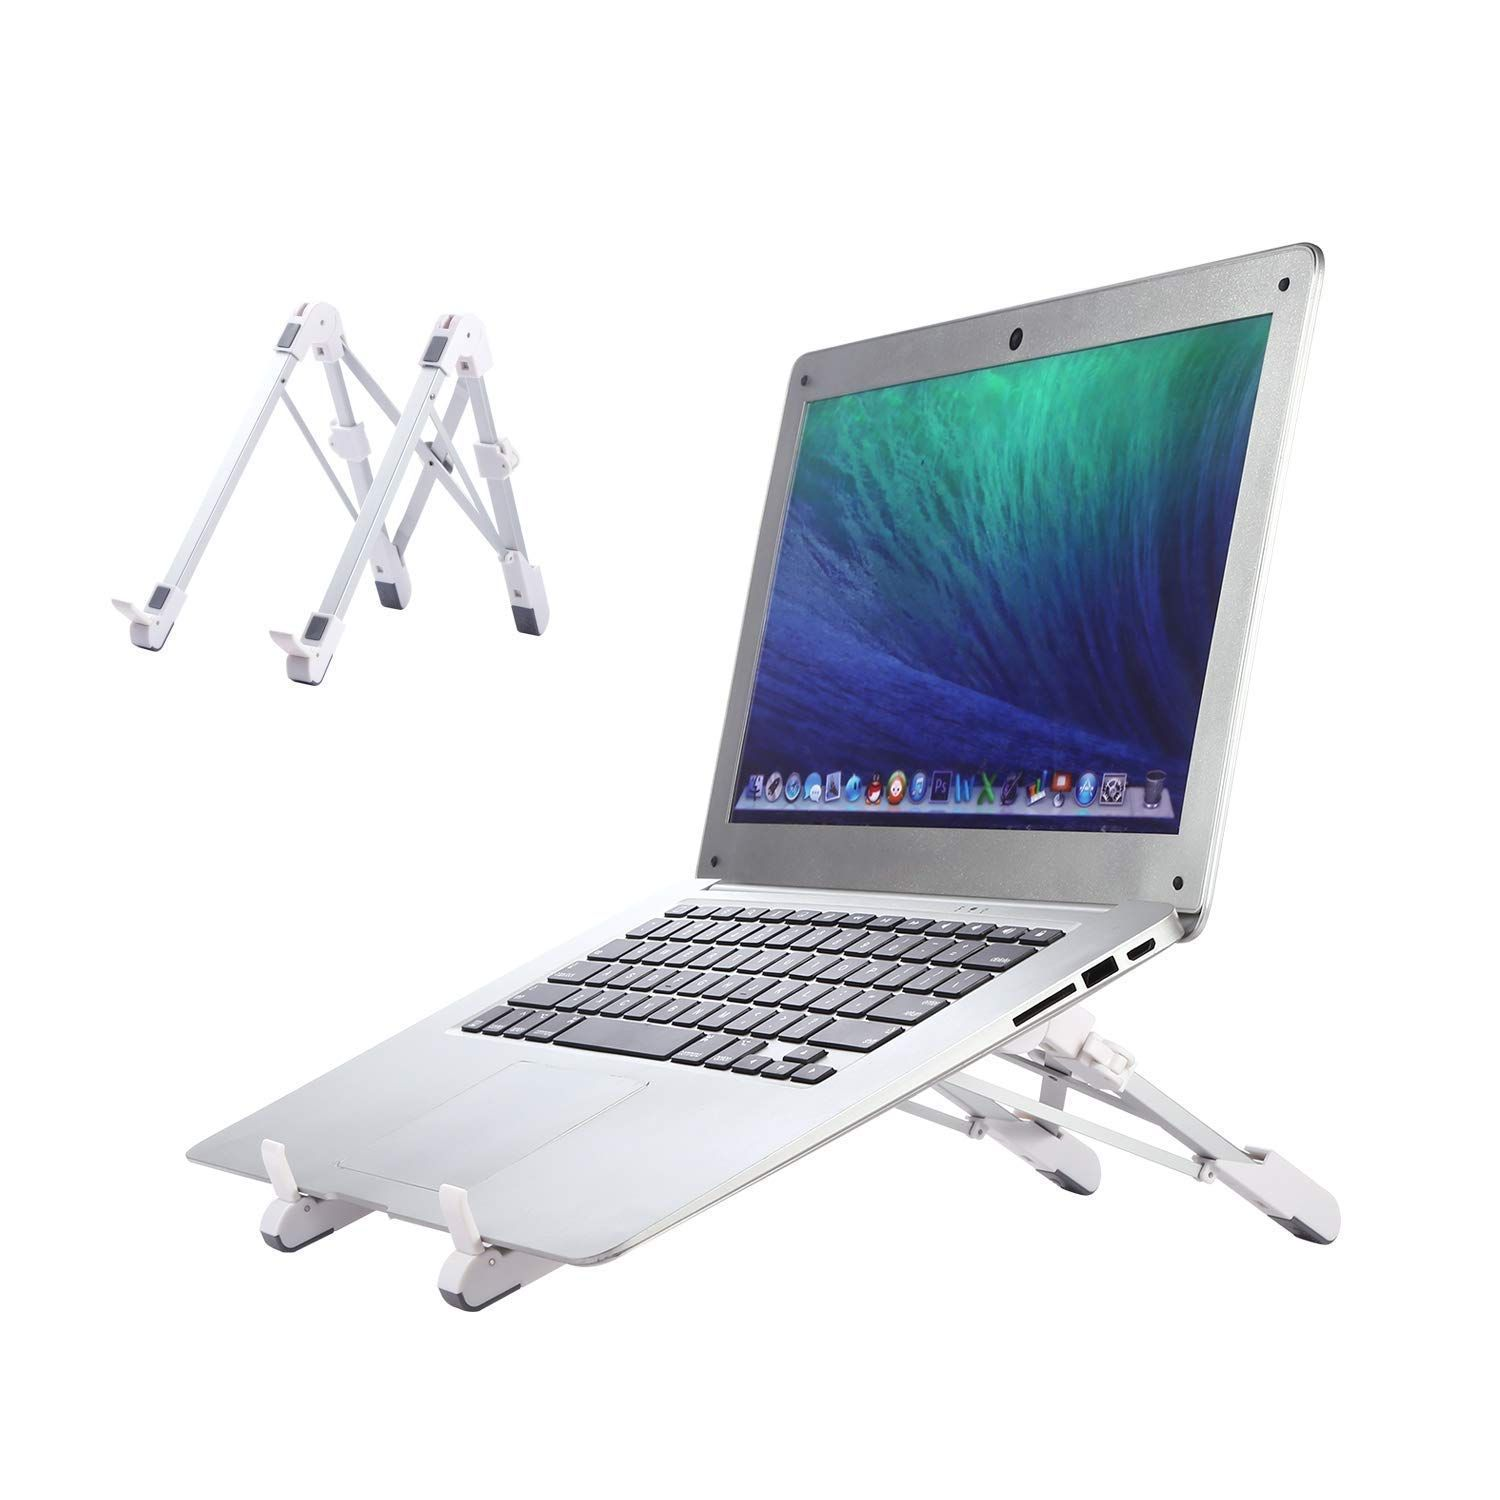 GUSODOR Support d'Ordinateur Portable Laptop Stand